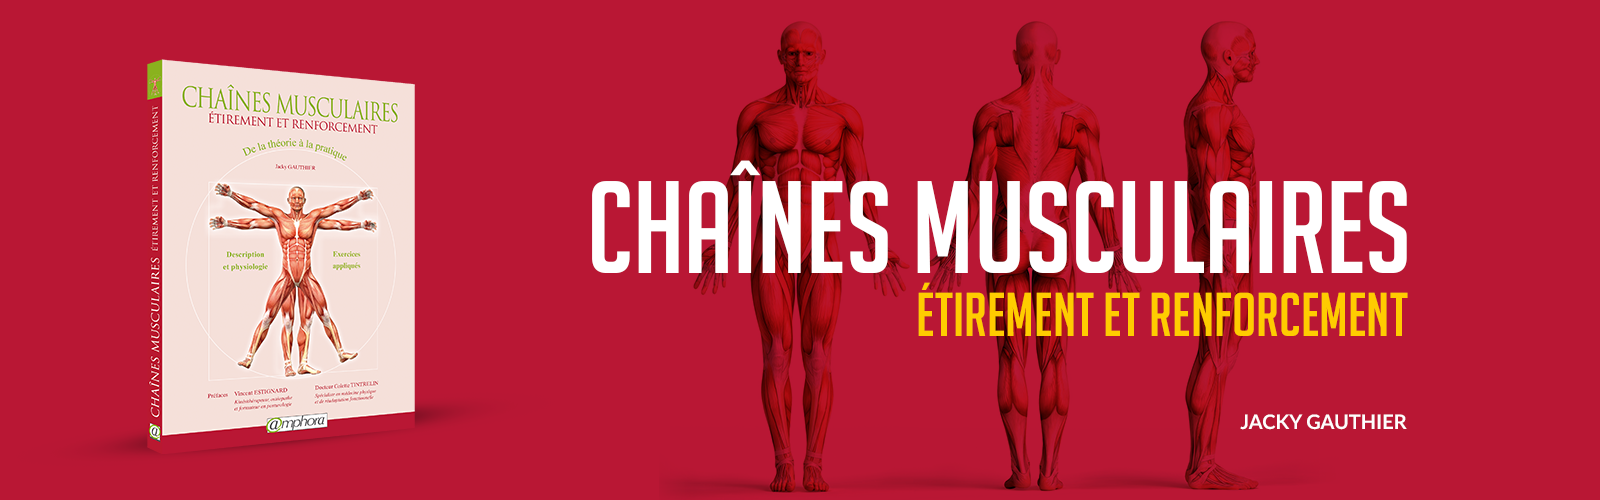 Slide Chaines musculaires